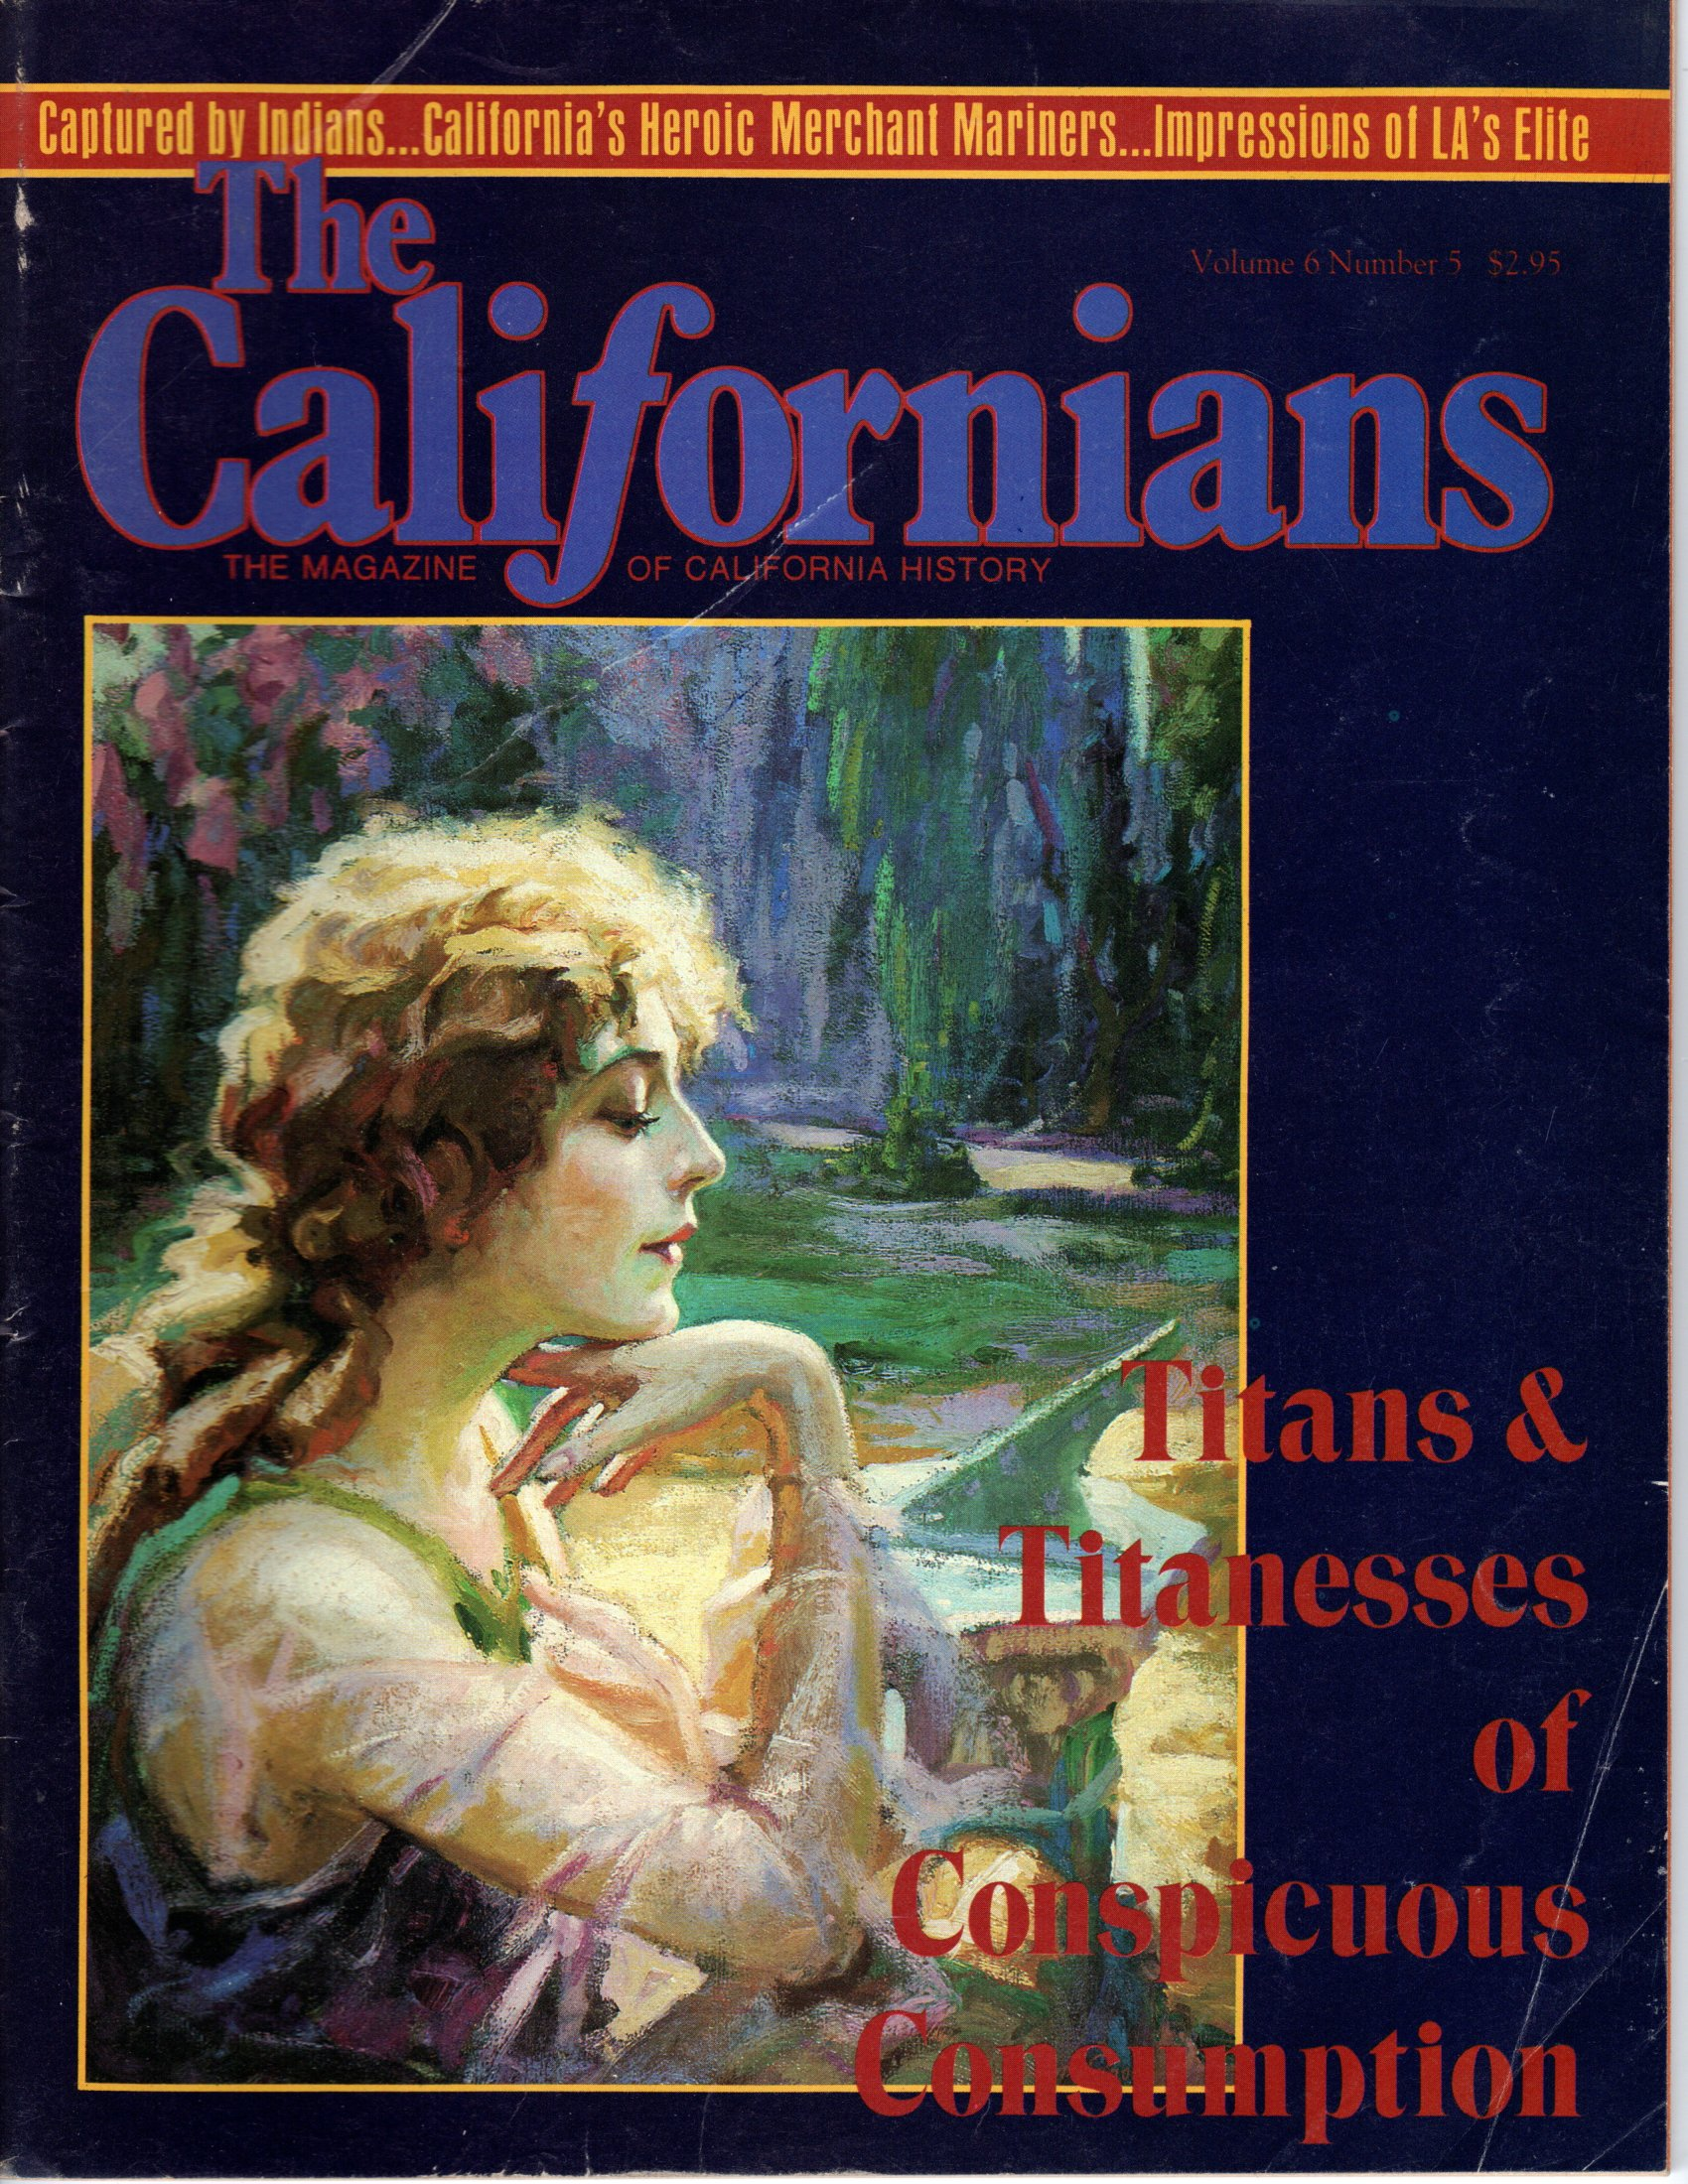 Image for The Californians. The Magazine of California History. Titans & Titanesses of Conspicuous Consumption.  [Volume 6, Number 5, September/October 1988]